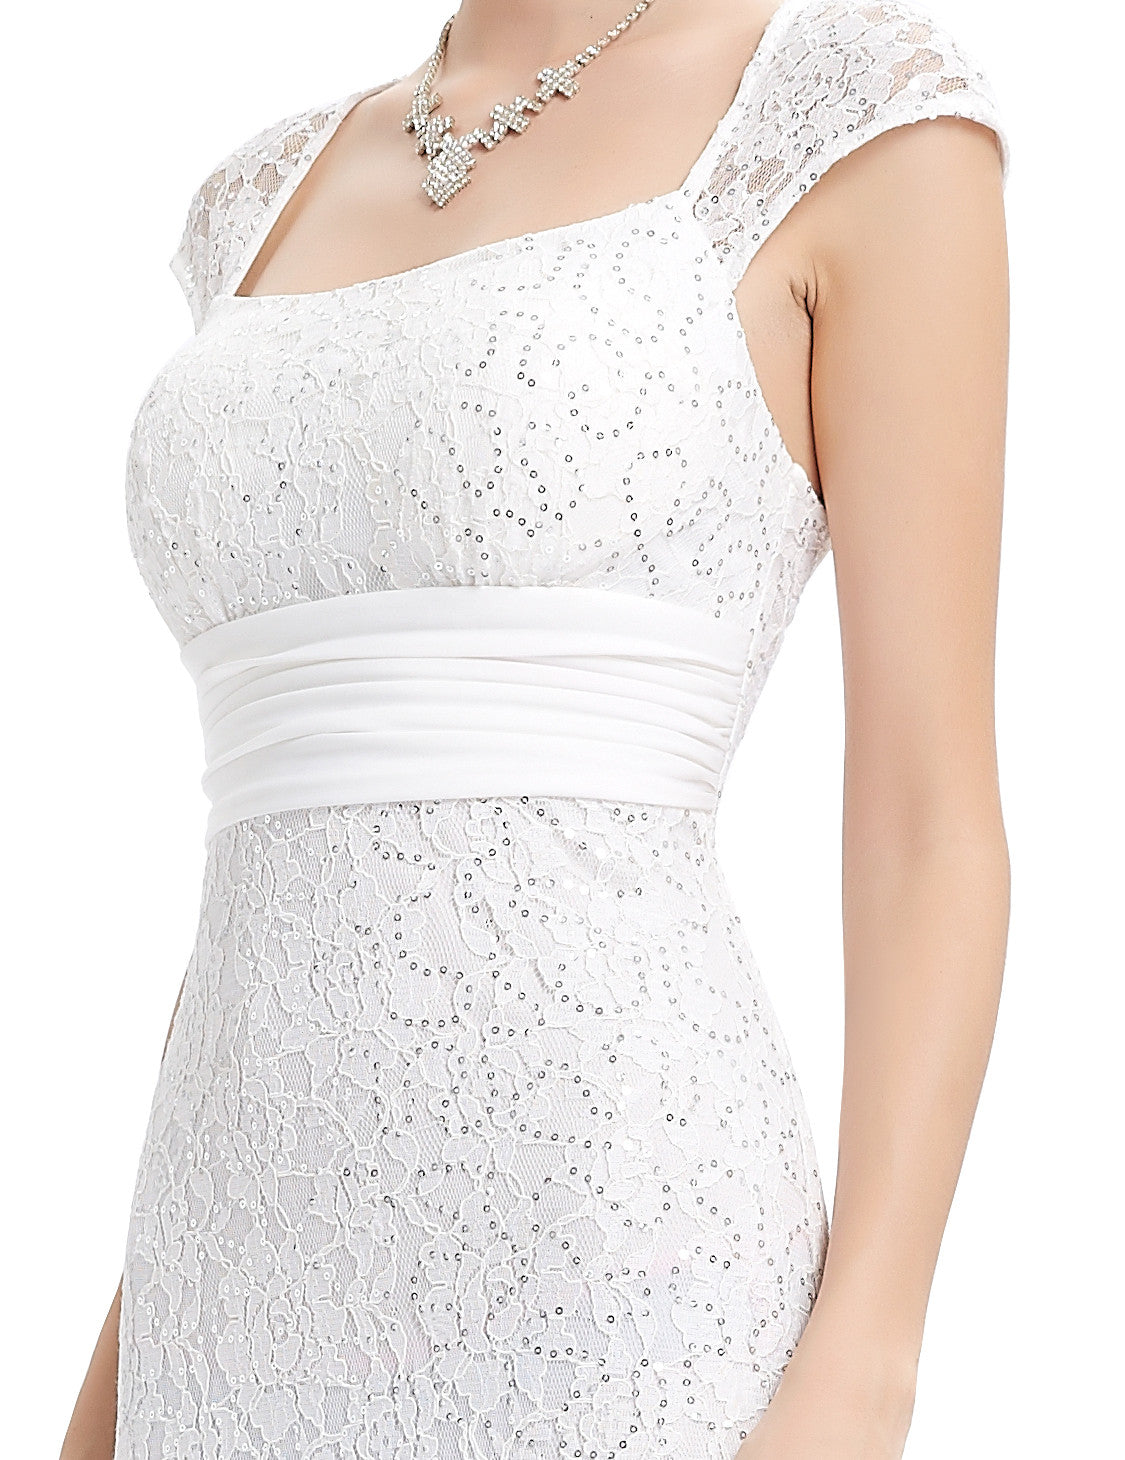 White Elegant Lacy Long Evening Party Dress - O'beige